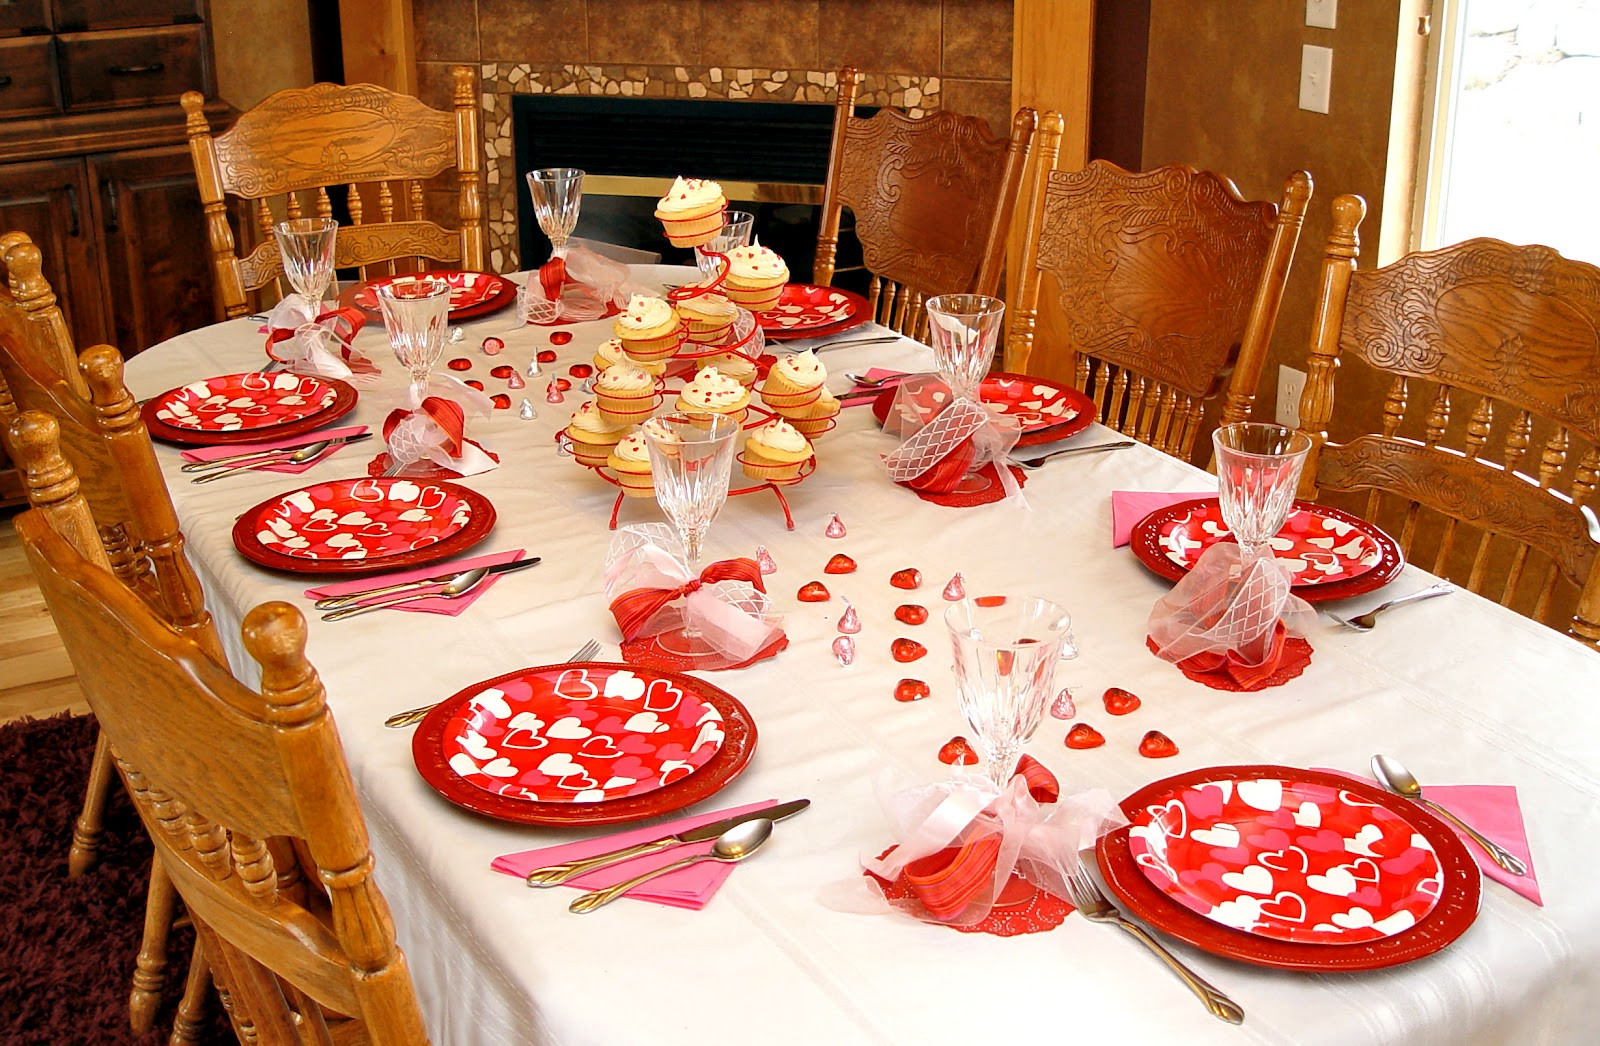 Valentines Dinner For Kids  Family Valentines Dinner Idea and How To Make A Junk Bow